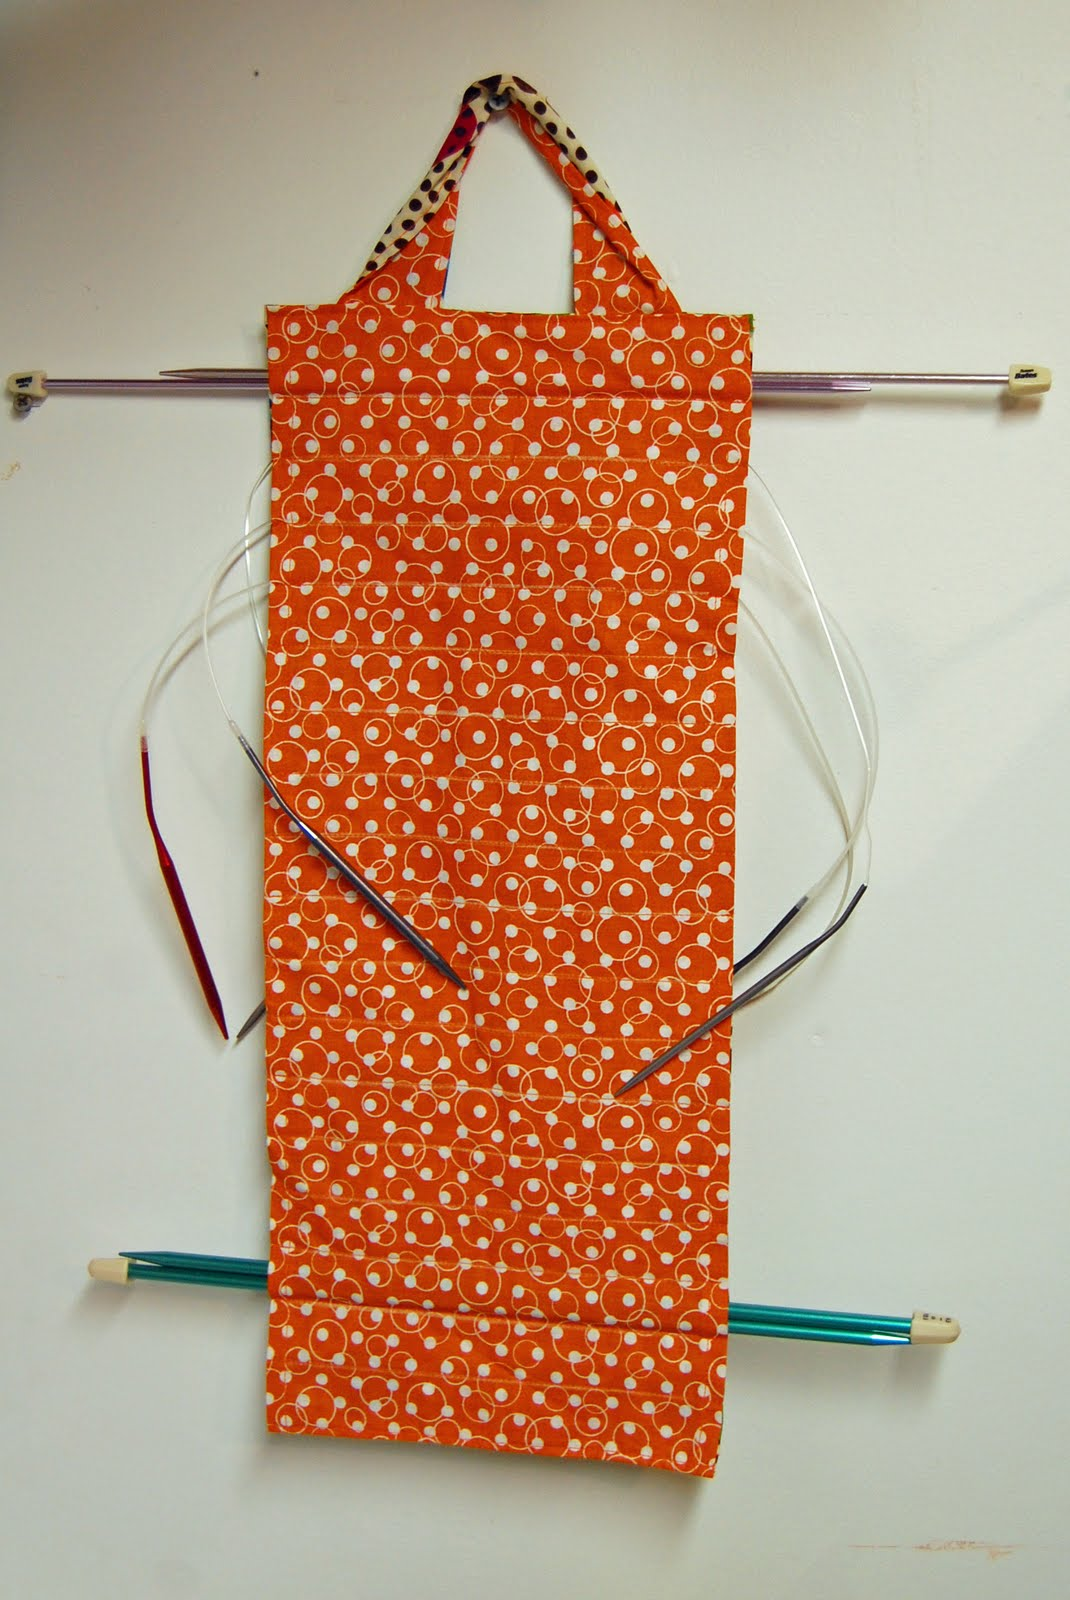 Knitting Pattern Needle Holder : Pin and Paper: Hanging Circular Knitting Needle Holder - a tutorial